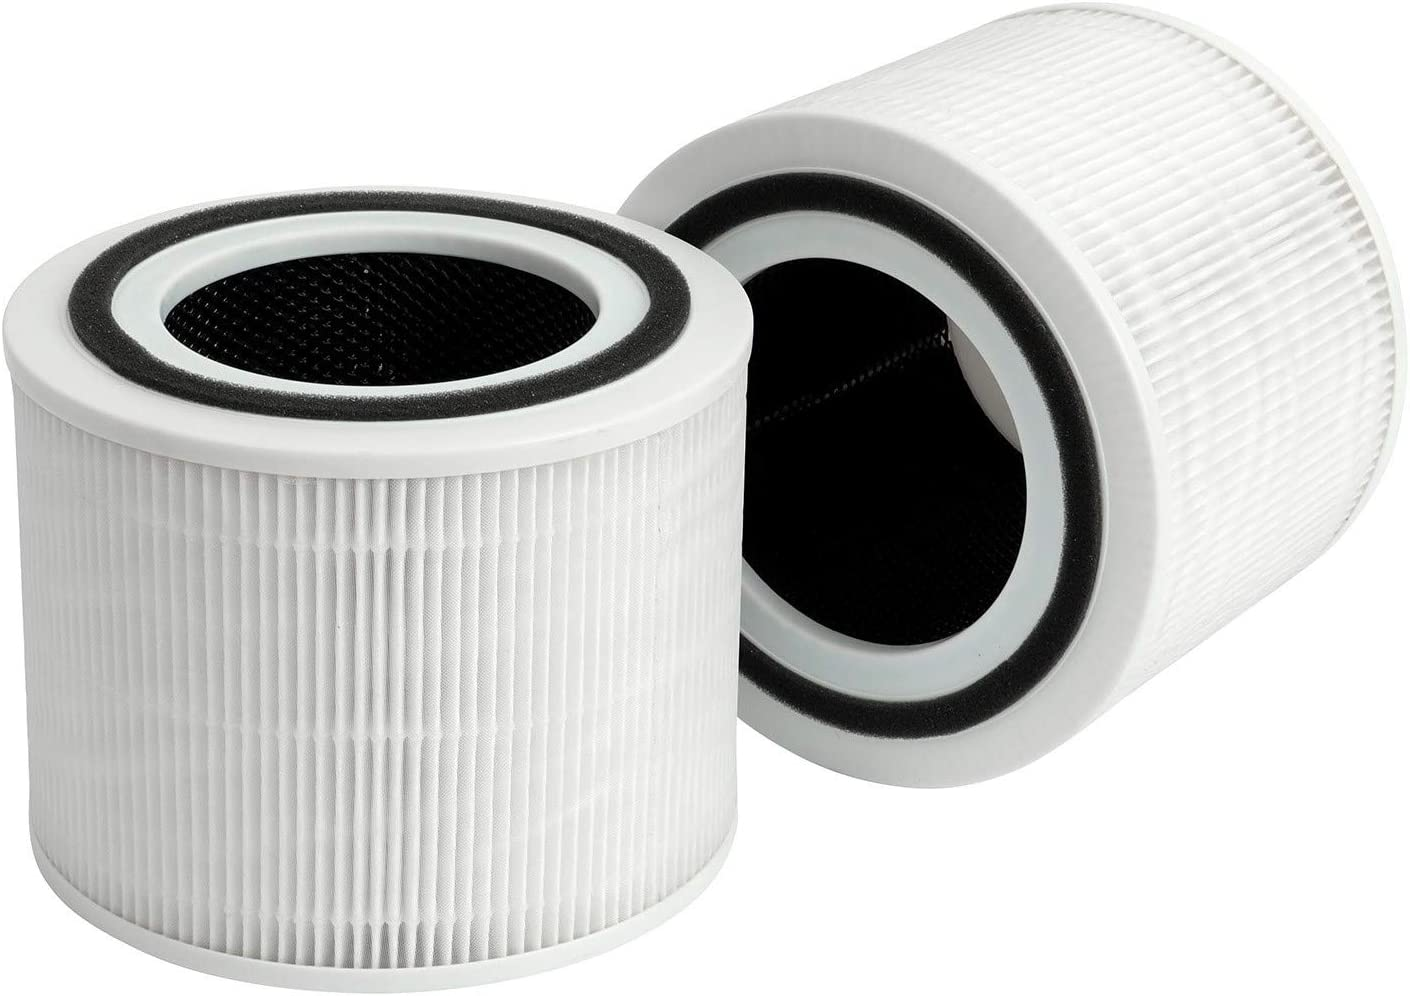 Flintar 2 Packs of Core 300 True HEPA Replacement Filters, Compatible with LEVOIT Core 300 Air Purifier, 3-in-1 H13 Grade Premium True HEPA Filter Replacement, Core 300-RF